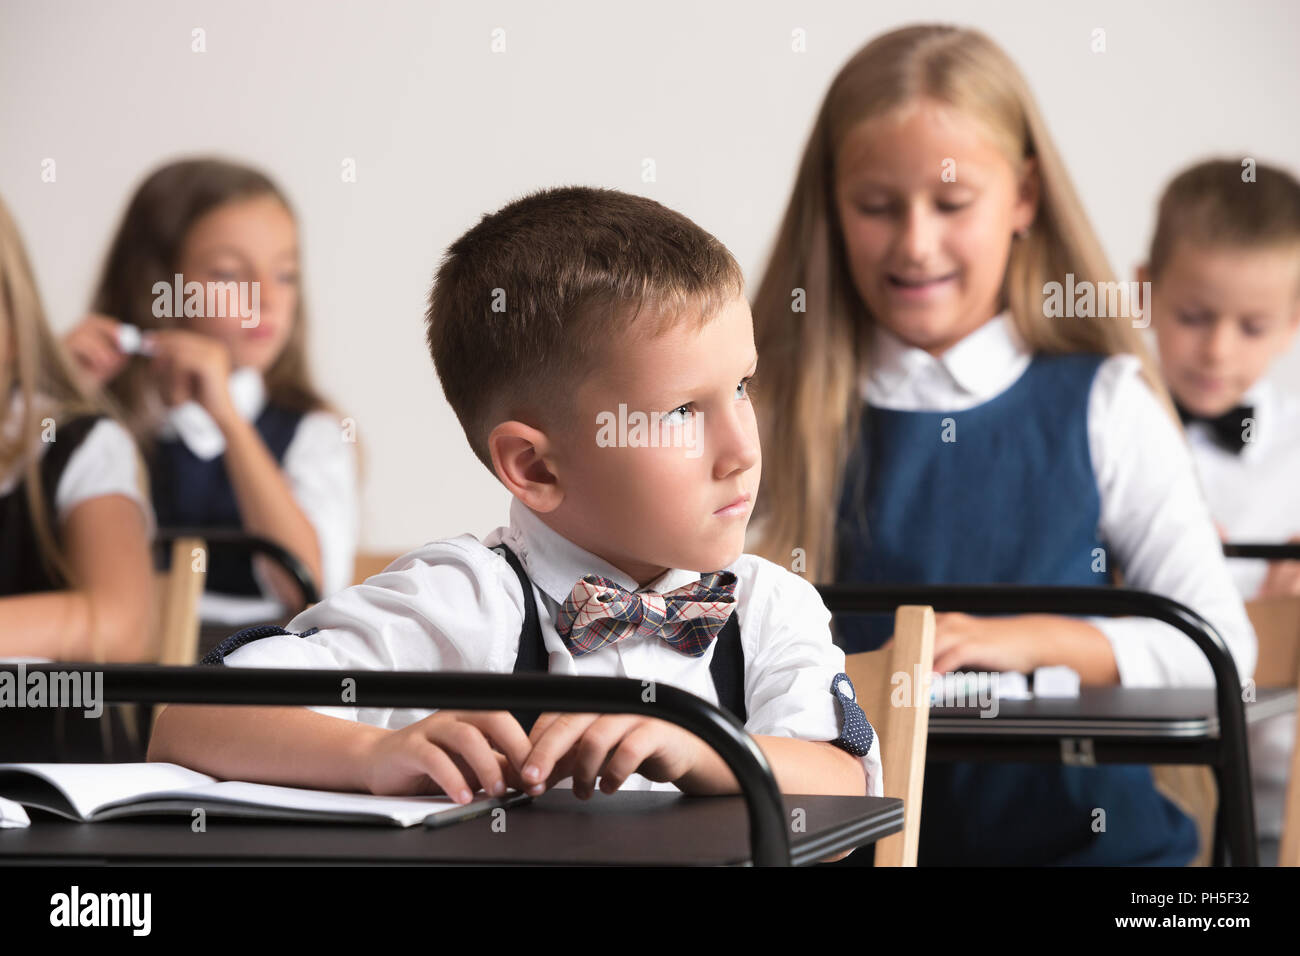 dee0e2f7e20ca School children in classroom at lesson. The little boys and girls sitting  at desks. Back to school, education, classroom, lesson, learn, lifestyle,  ...